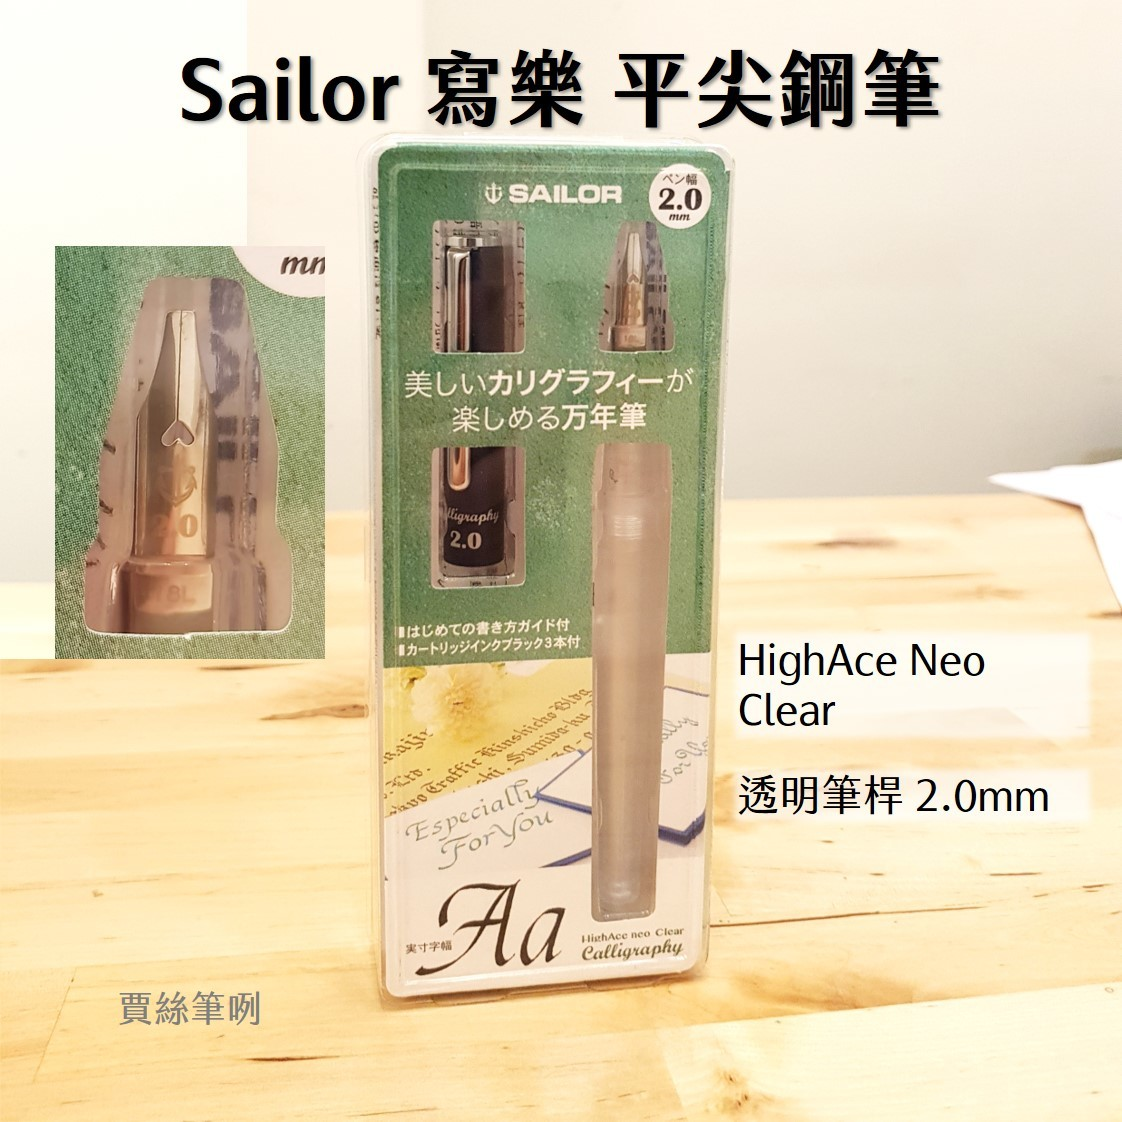 HighAce Neo Clear 2.0mm.jpg